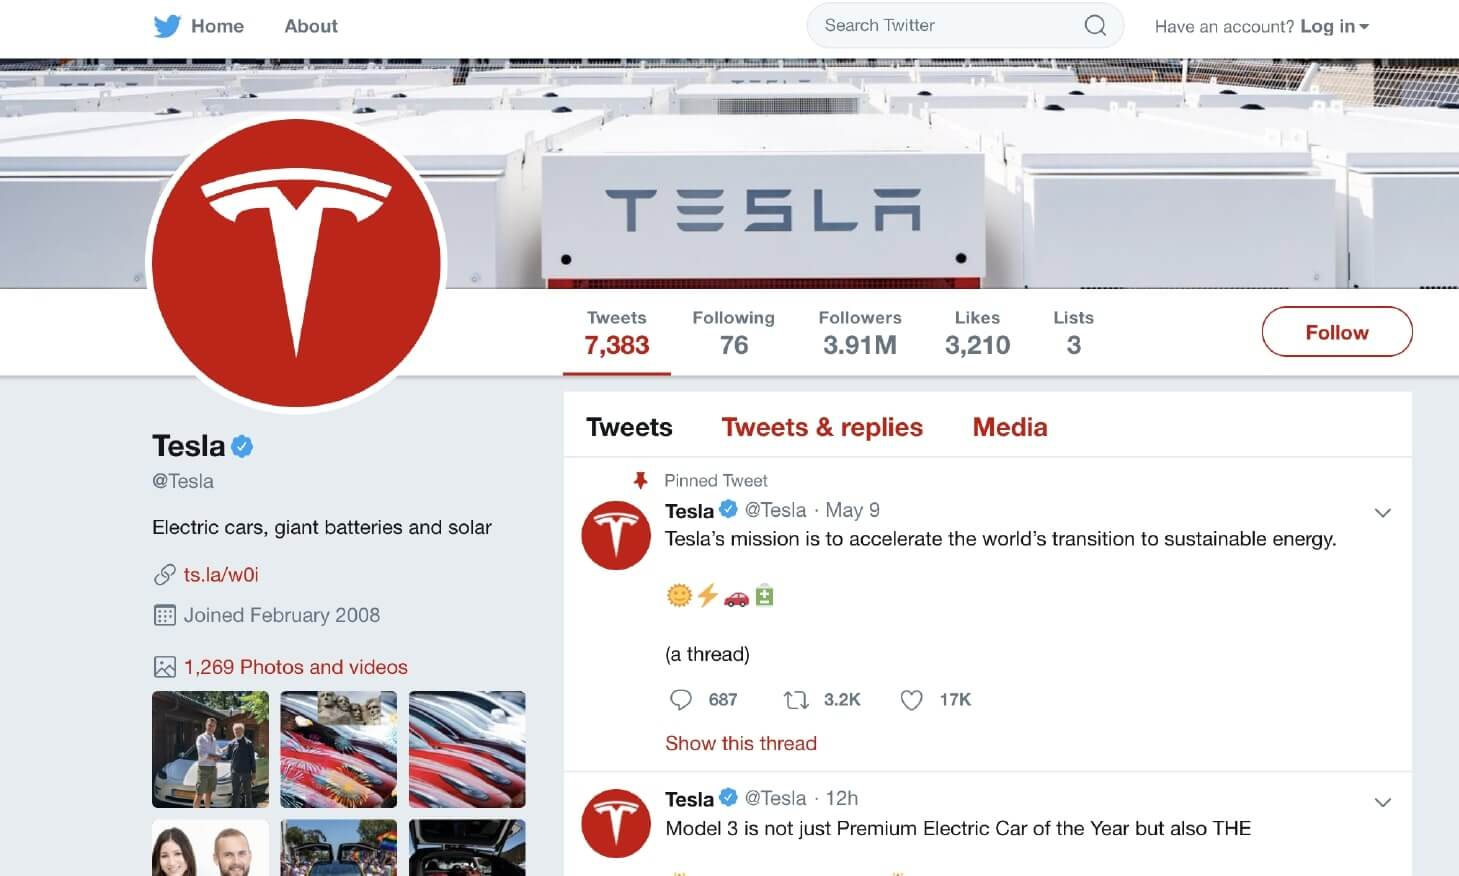 Example of Using Social Media Customer Service by Tesla